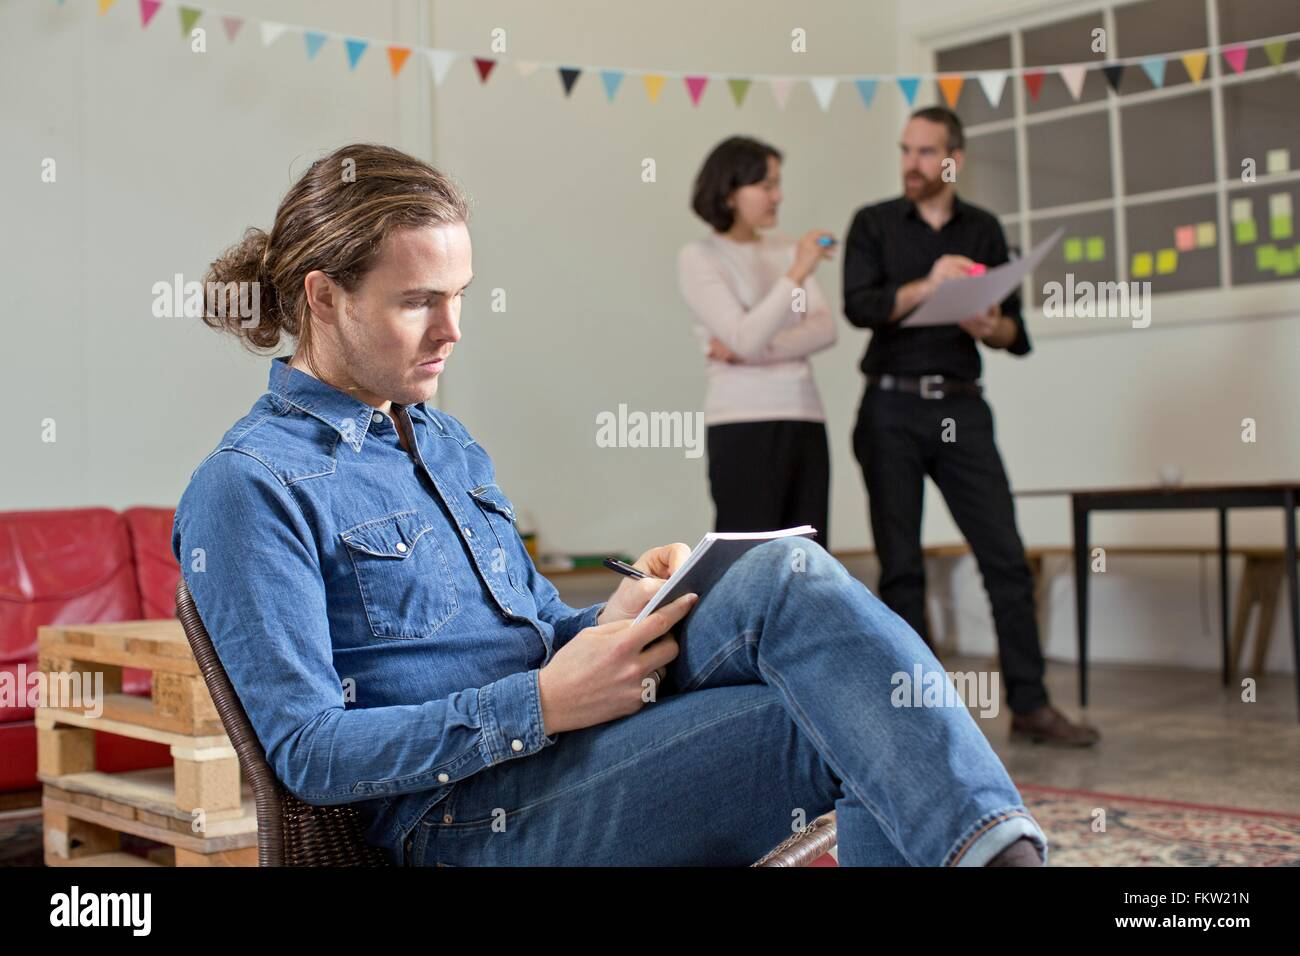 Man writing notes, colleagues in background - Stock Image